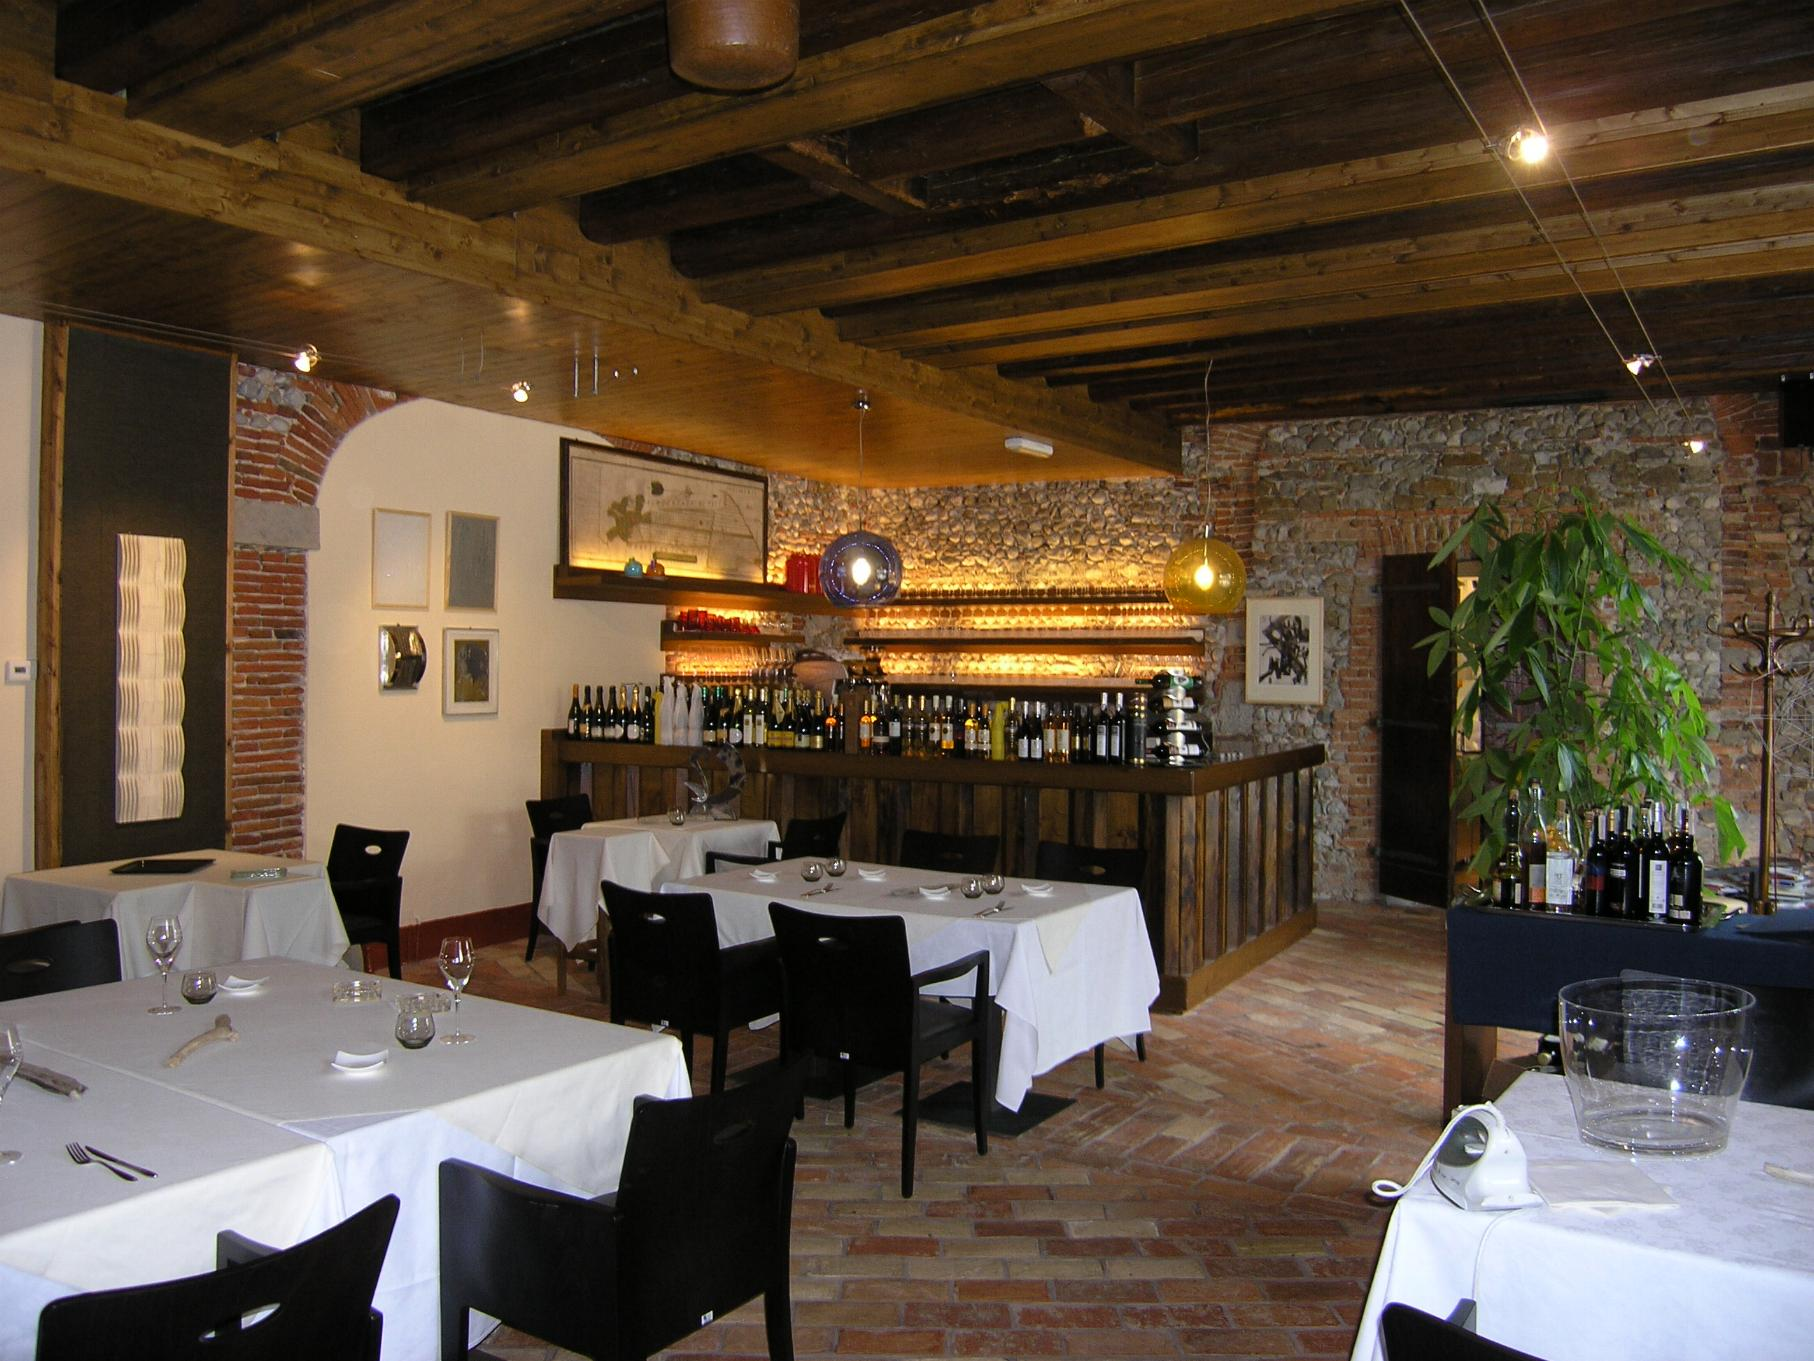 Arredare rustico interesting arredare cucina rustici di for Arredare pizzeria